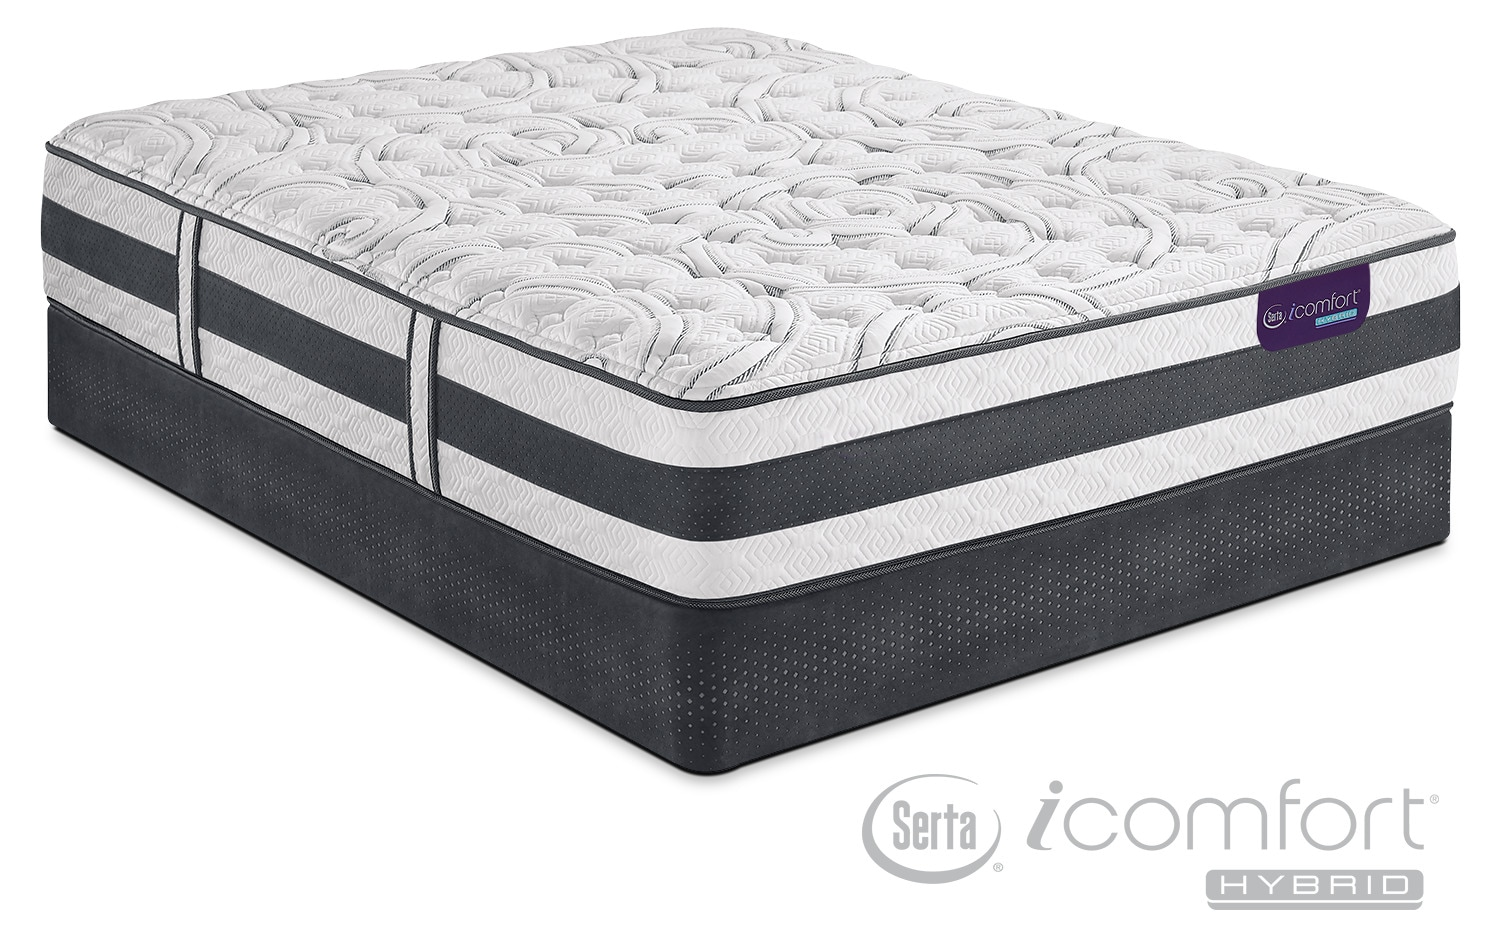 Mattresses and Bedding - Applause II Firm King Mattress and Split Low-Profile Foundation Set